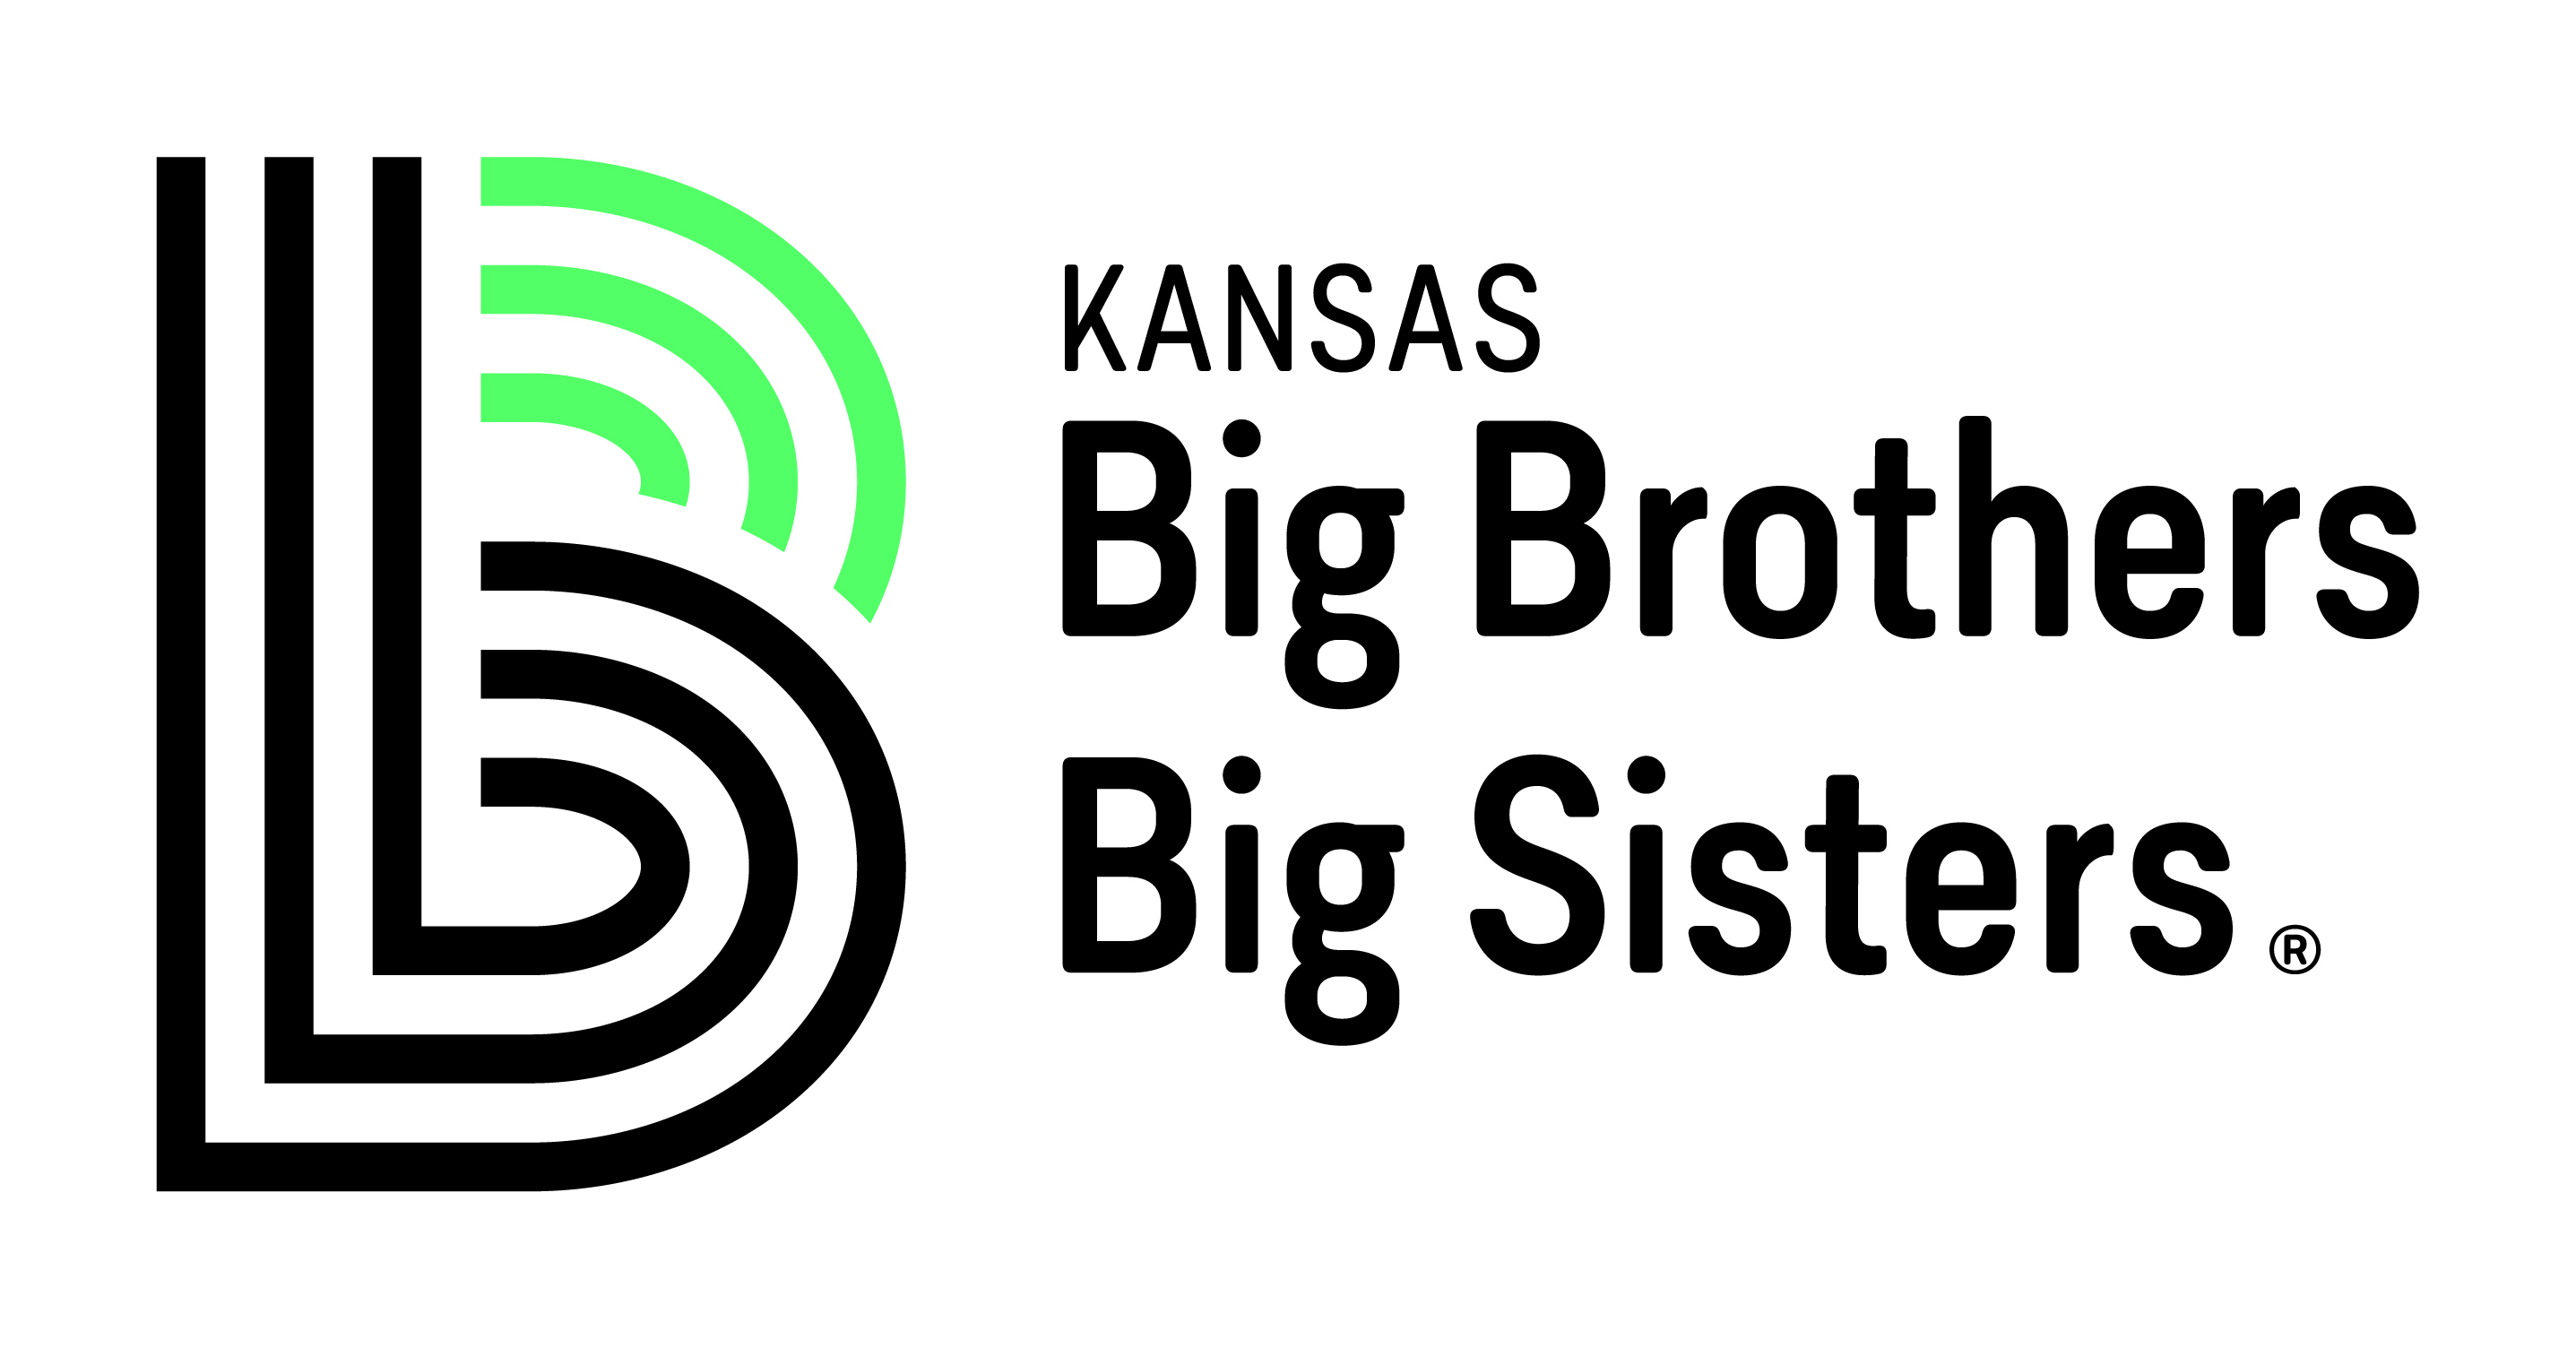 Kansas Big Brothers Big Sisters - Northwest Kansas